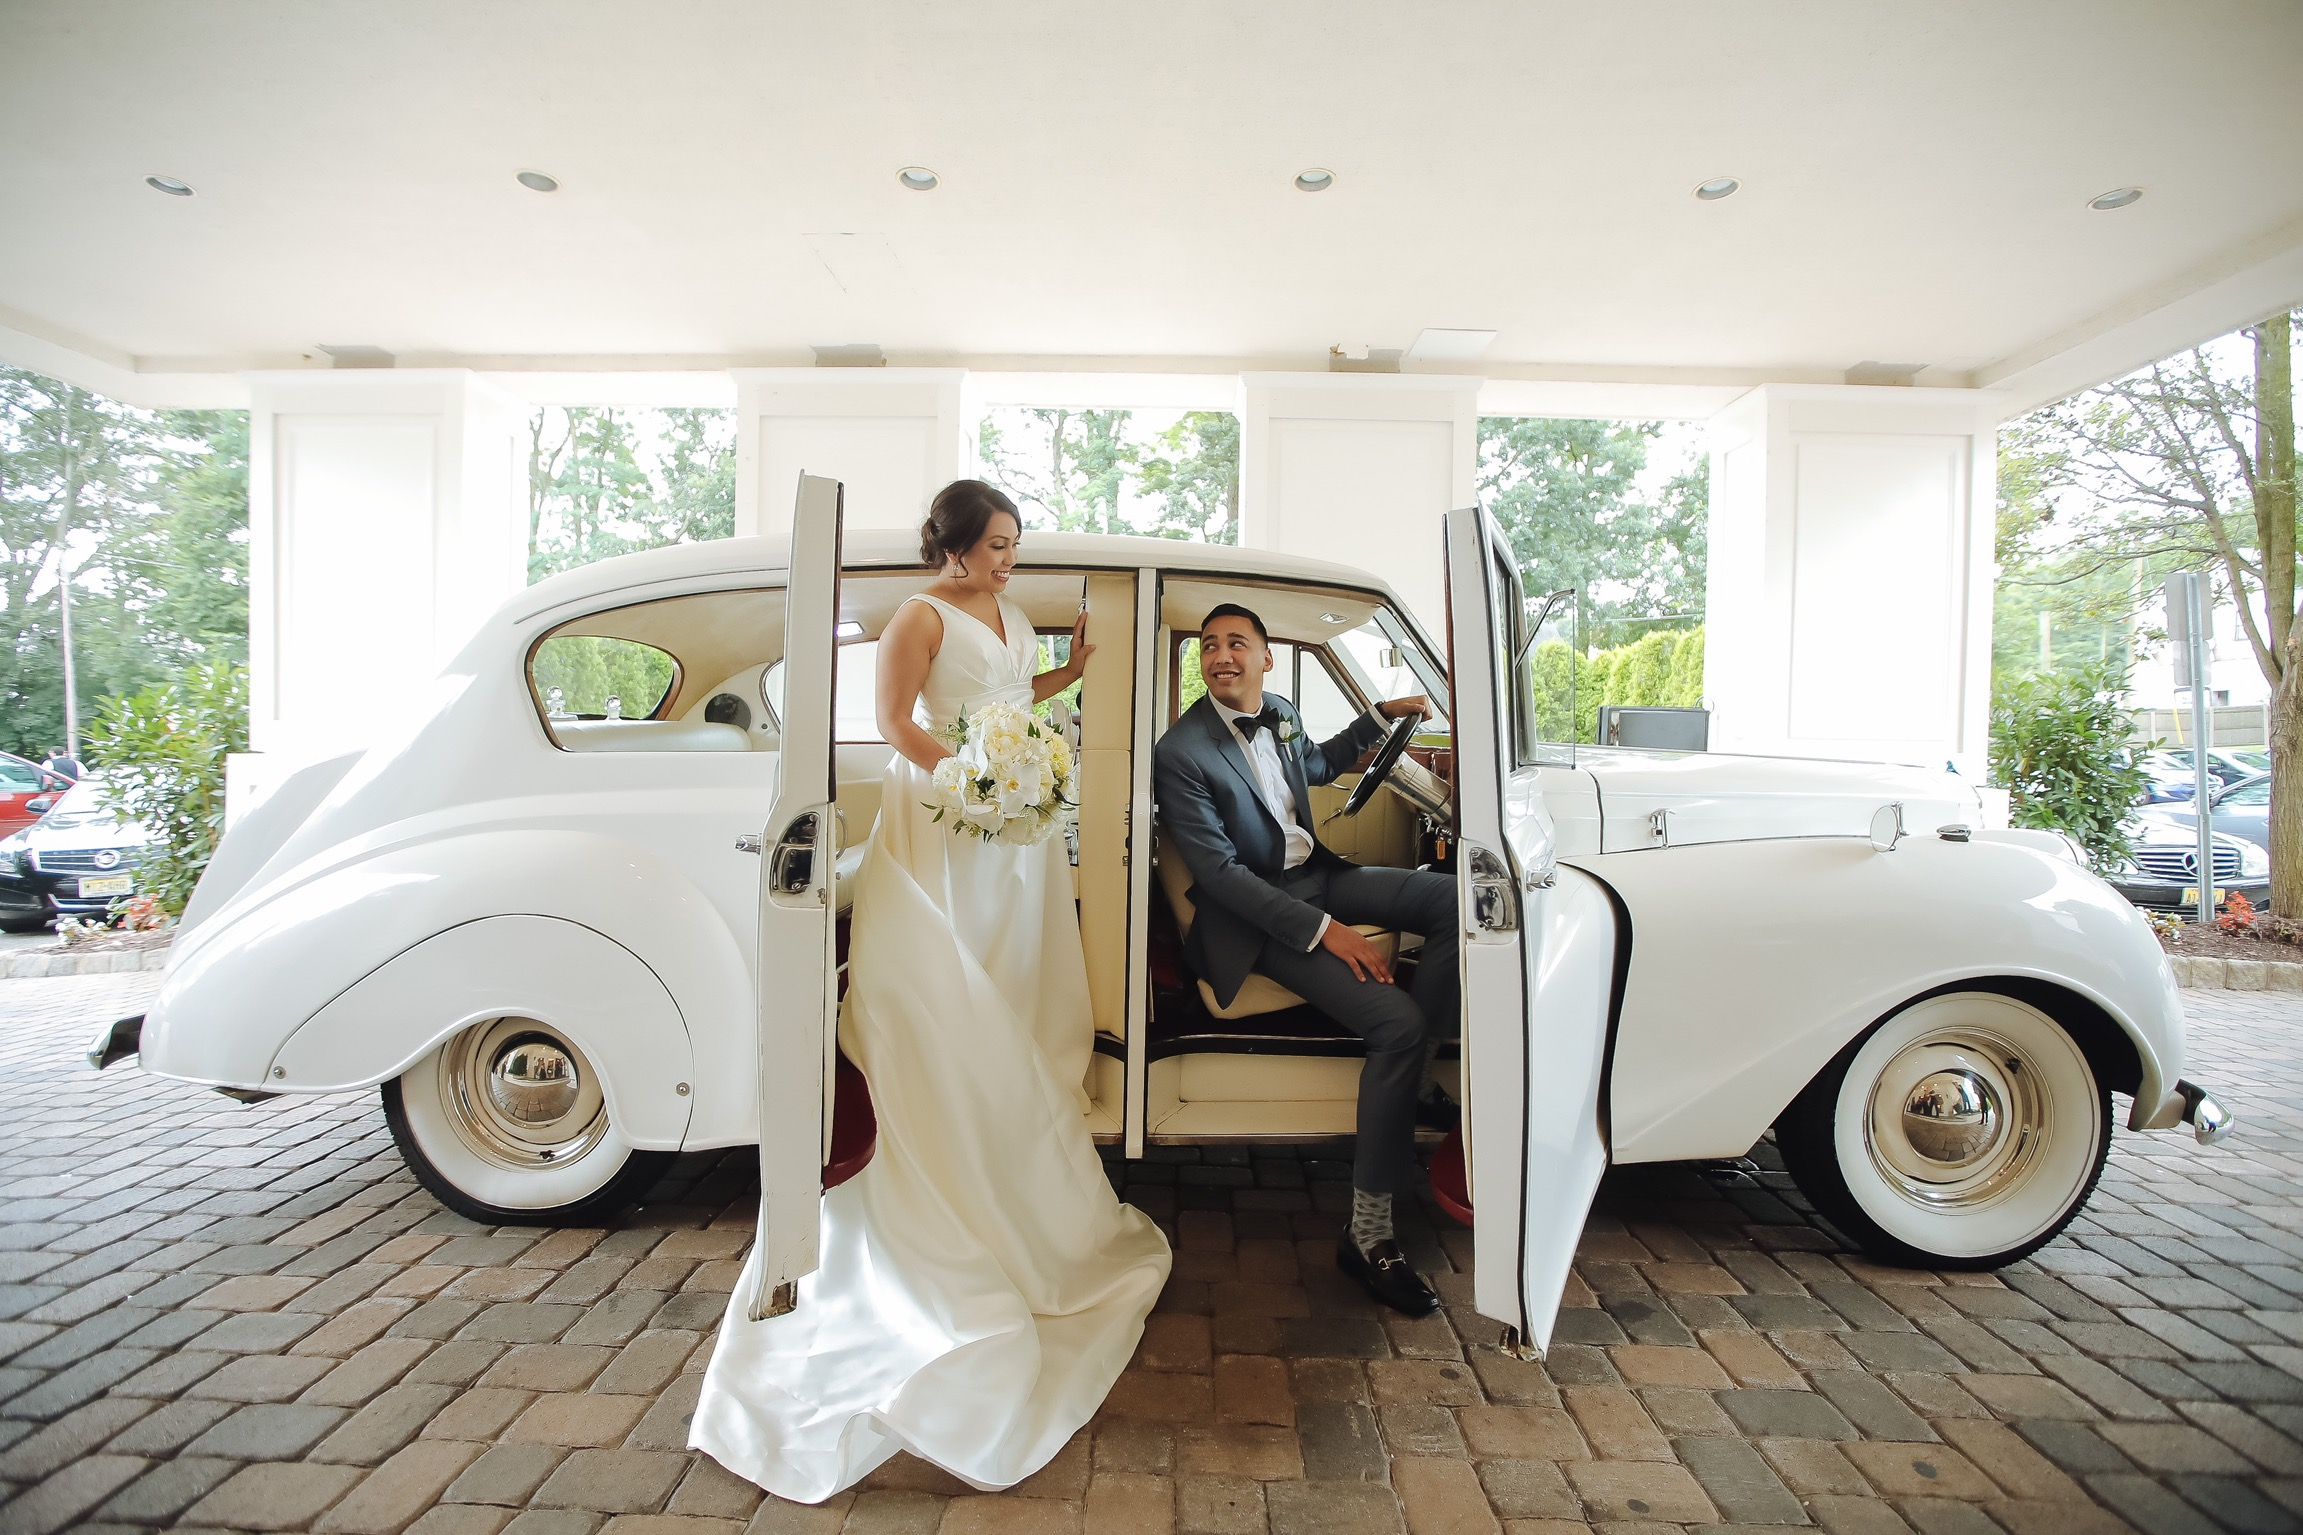 Moonlight Limo Wedding Limo Party Bus Luxury Service New Jersey